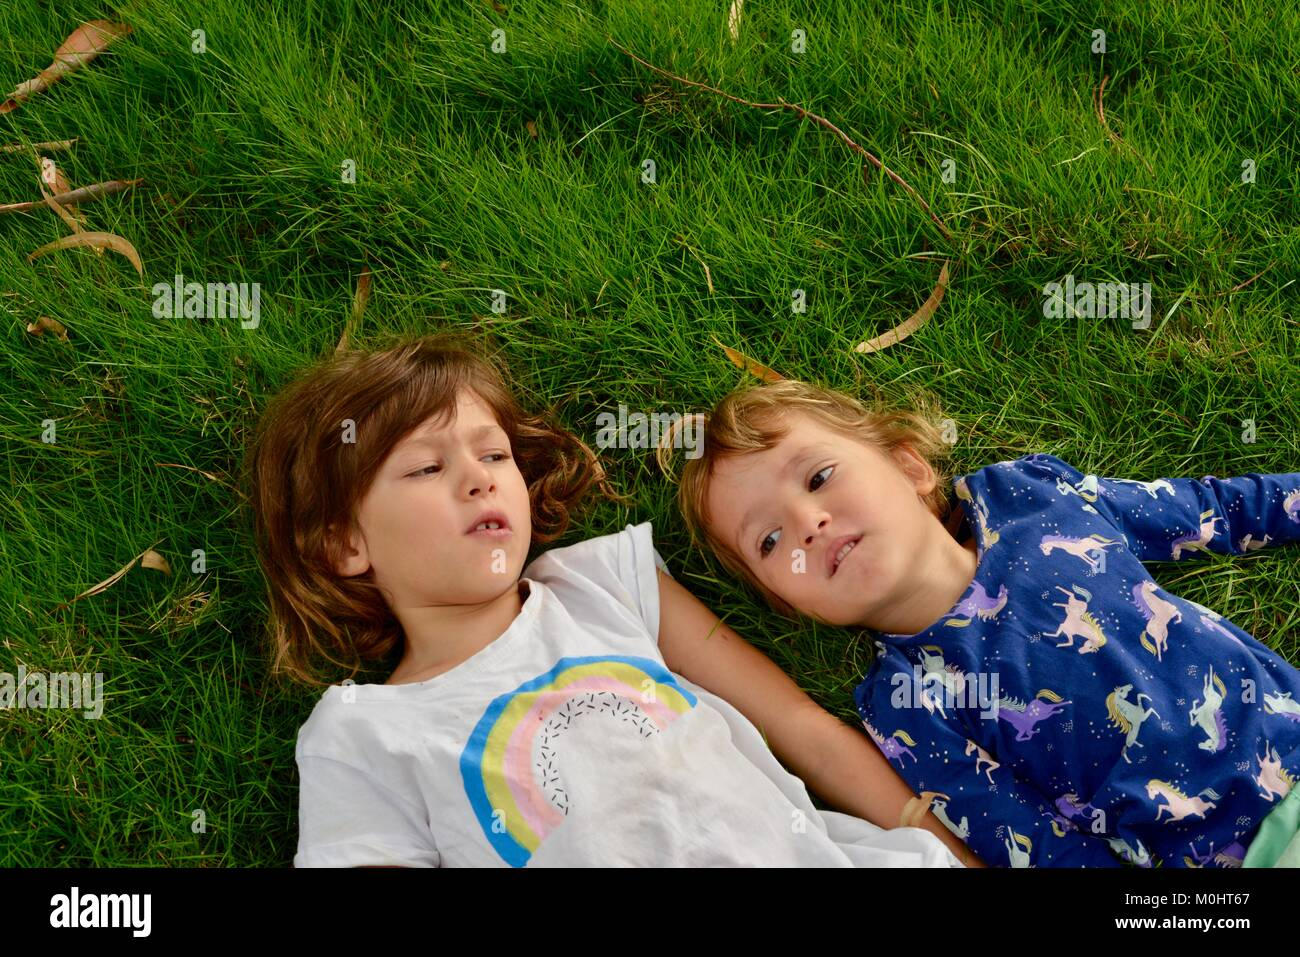 Two young girls lie on grass, portrait, Anderson Park Botanic Gardens, Townsville, Queensland, Australia Stock Photo